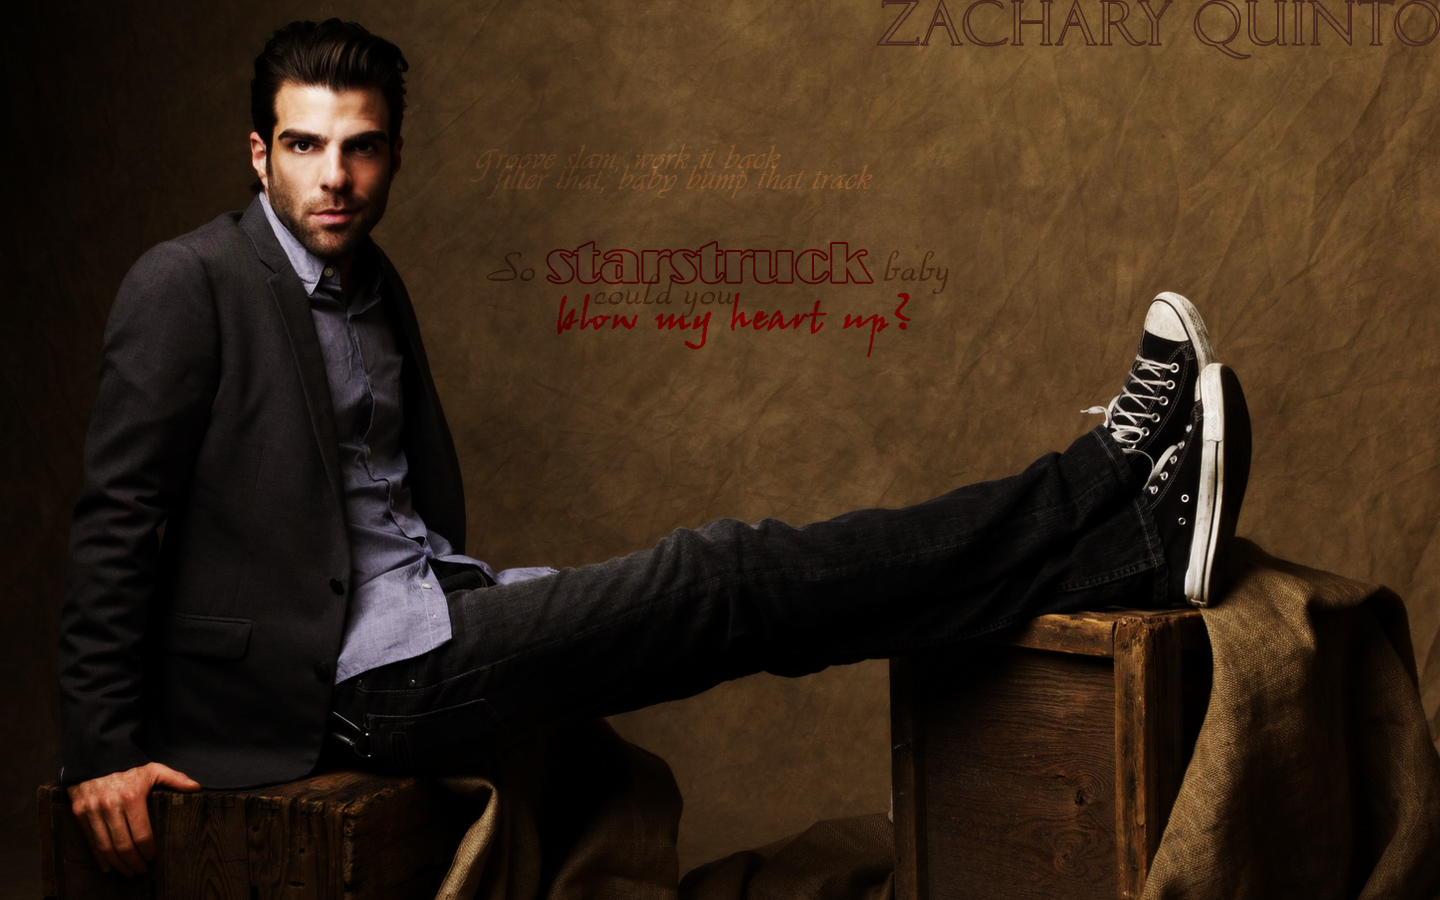 1440x900 - Zachary Quinto Wallpapers 2